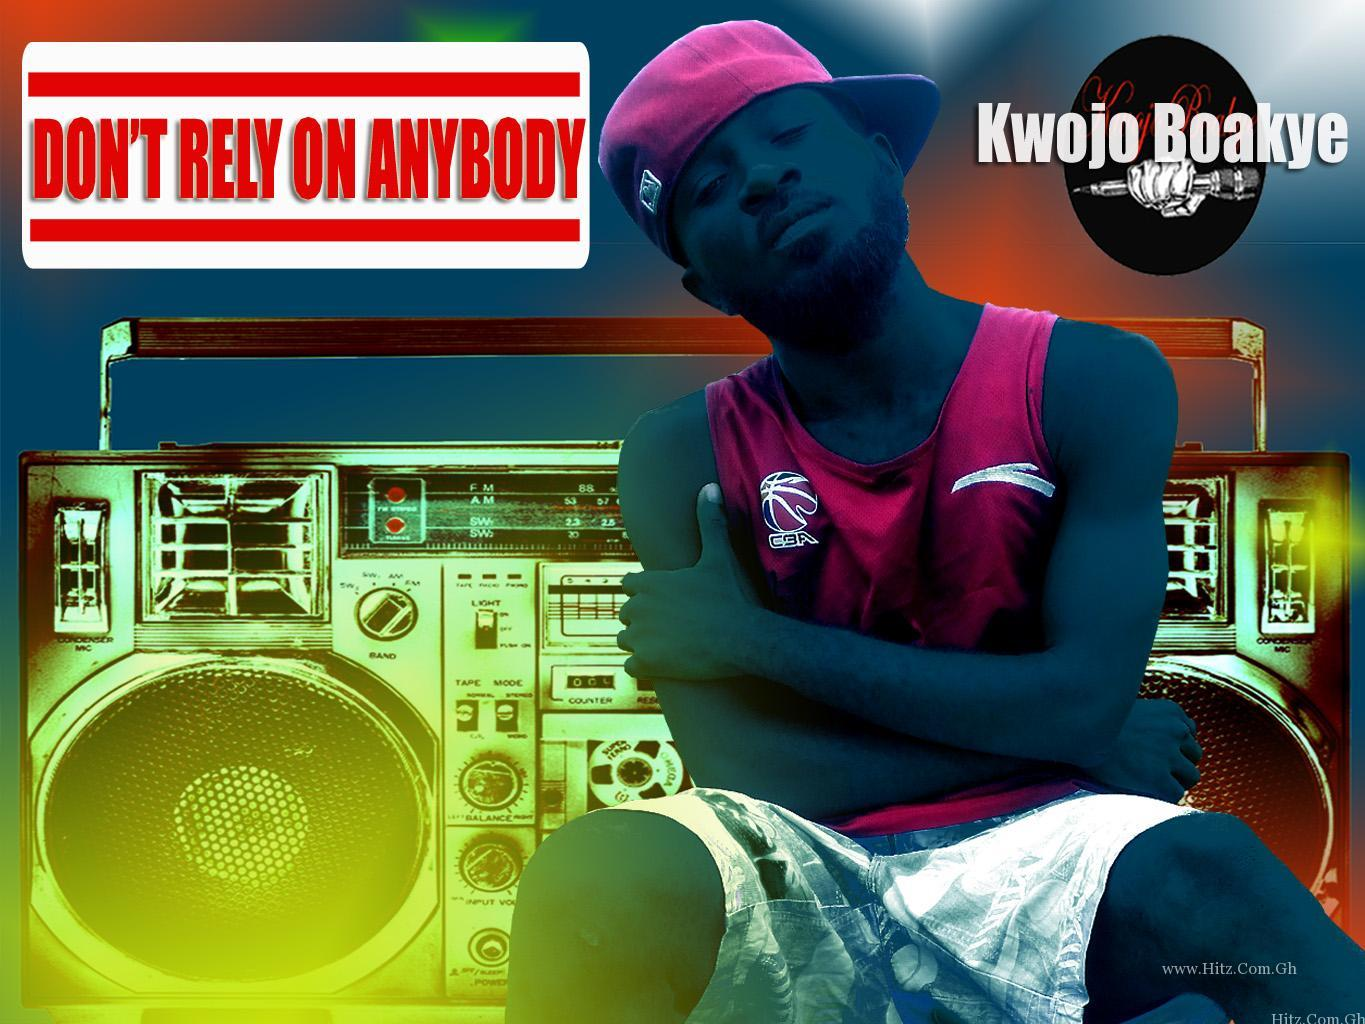 Kwojo Boakye - Don't Rely On Anybody (Mixed By Lazzy Beatz)